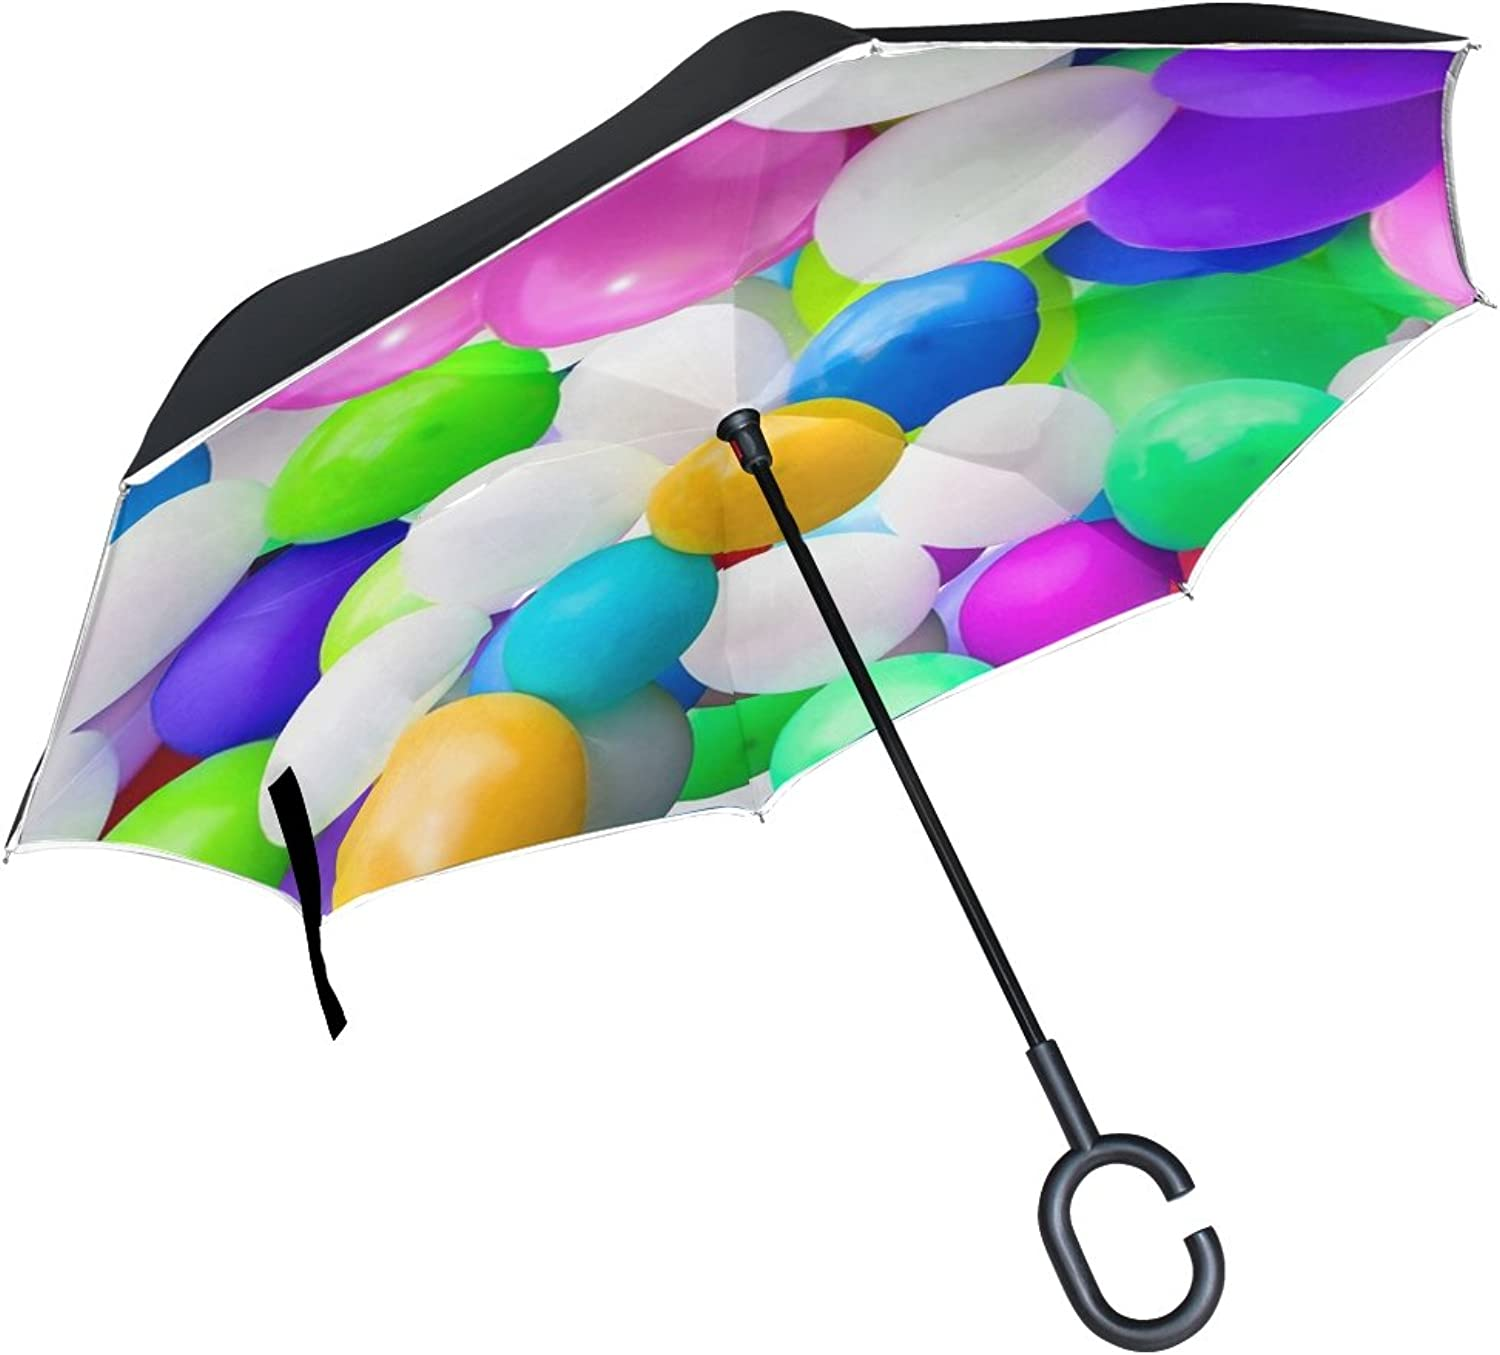 Double Layer Ingreened Balloon Birthday colorful Ballons Umbrellas Reverse Folding Umbrella Windproof Uv Predection Big Straight Umbrella for Car Rain Outdoor with CShaped Handle